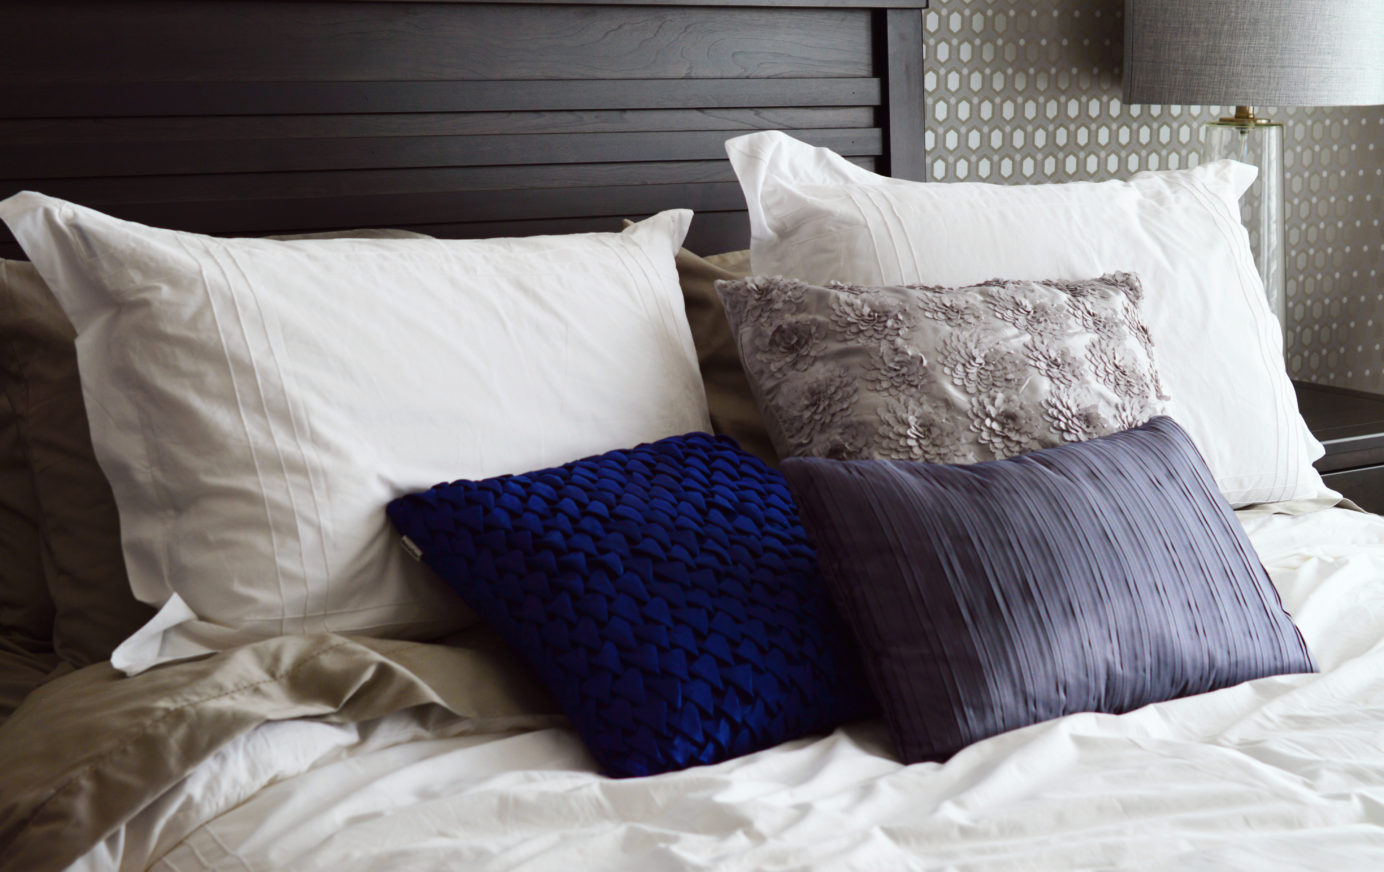 Tips for a calmer bedroom from Helen Sanderson